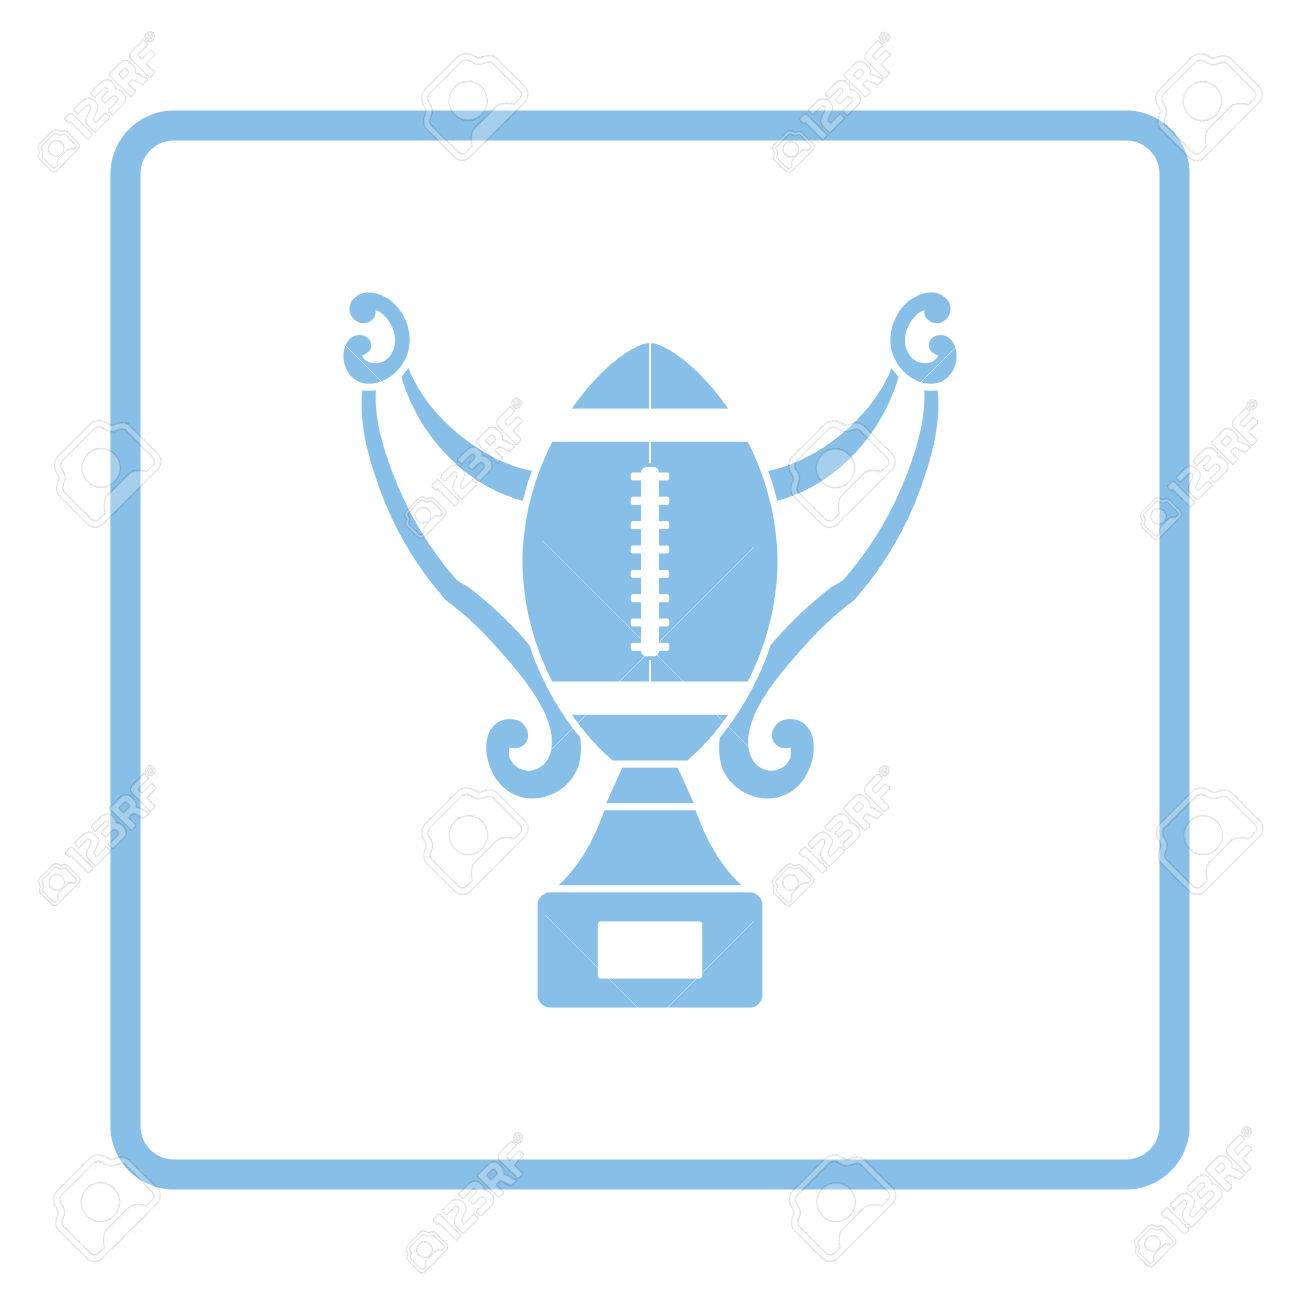 American Football Trophy Cup Icon Blue Frame Design Vector Illustration Stock